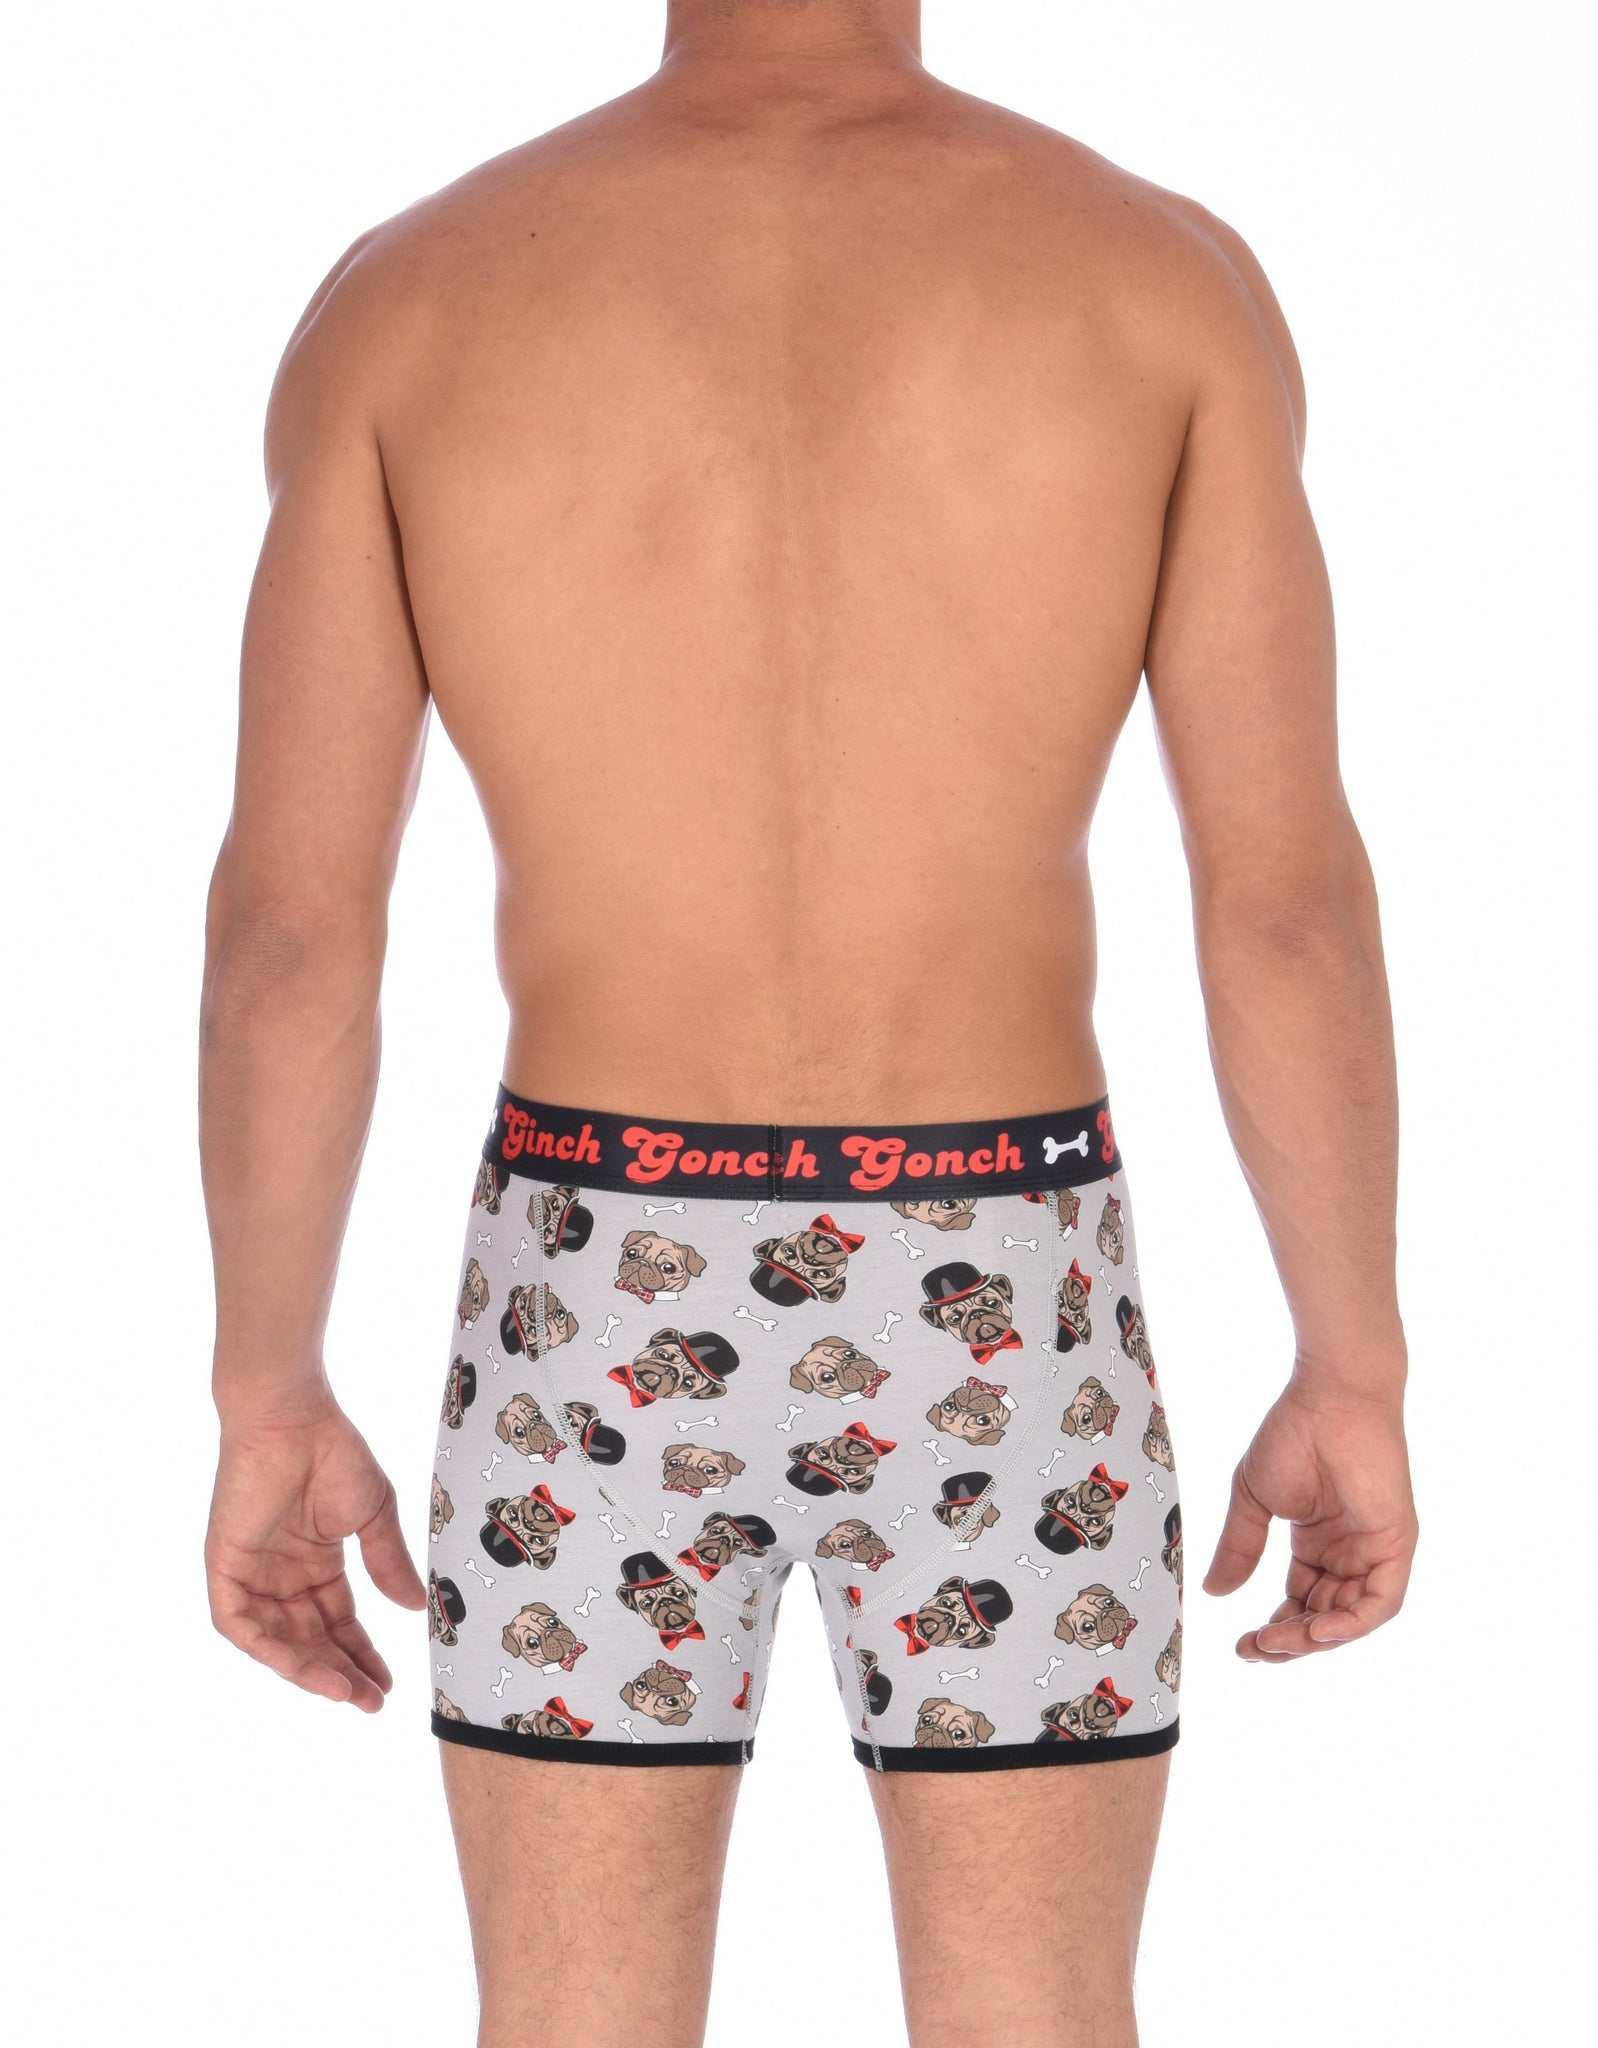 GG Ginch Gonch Pug Life Boxer Brief trunk - Men's Underwear grey background with pugs with top hats and bow ties and bones. Black trim with black printed waistband back